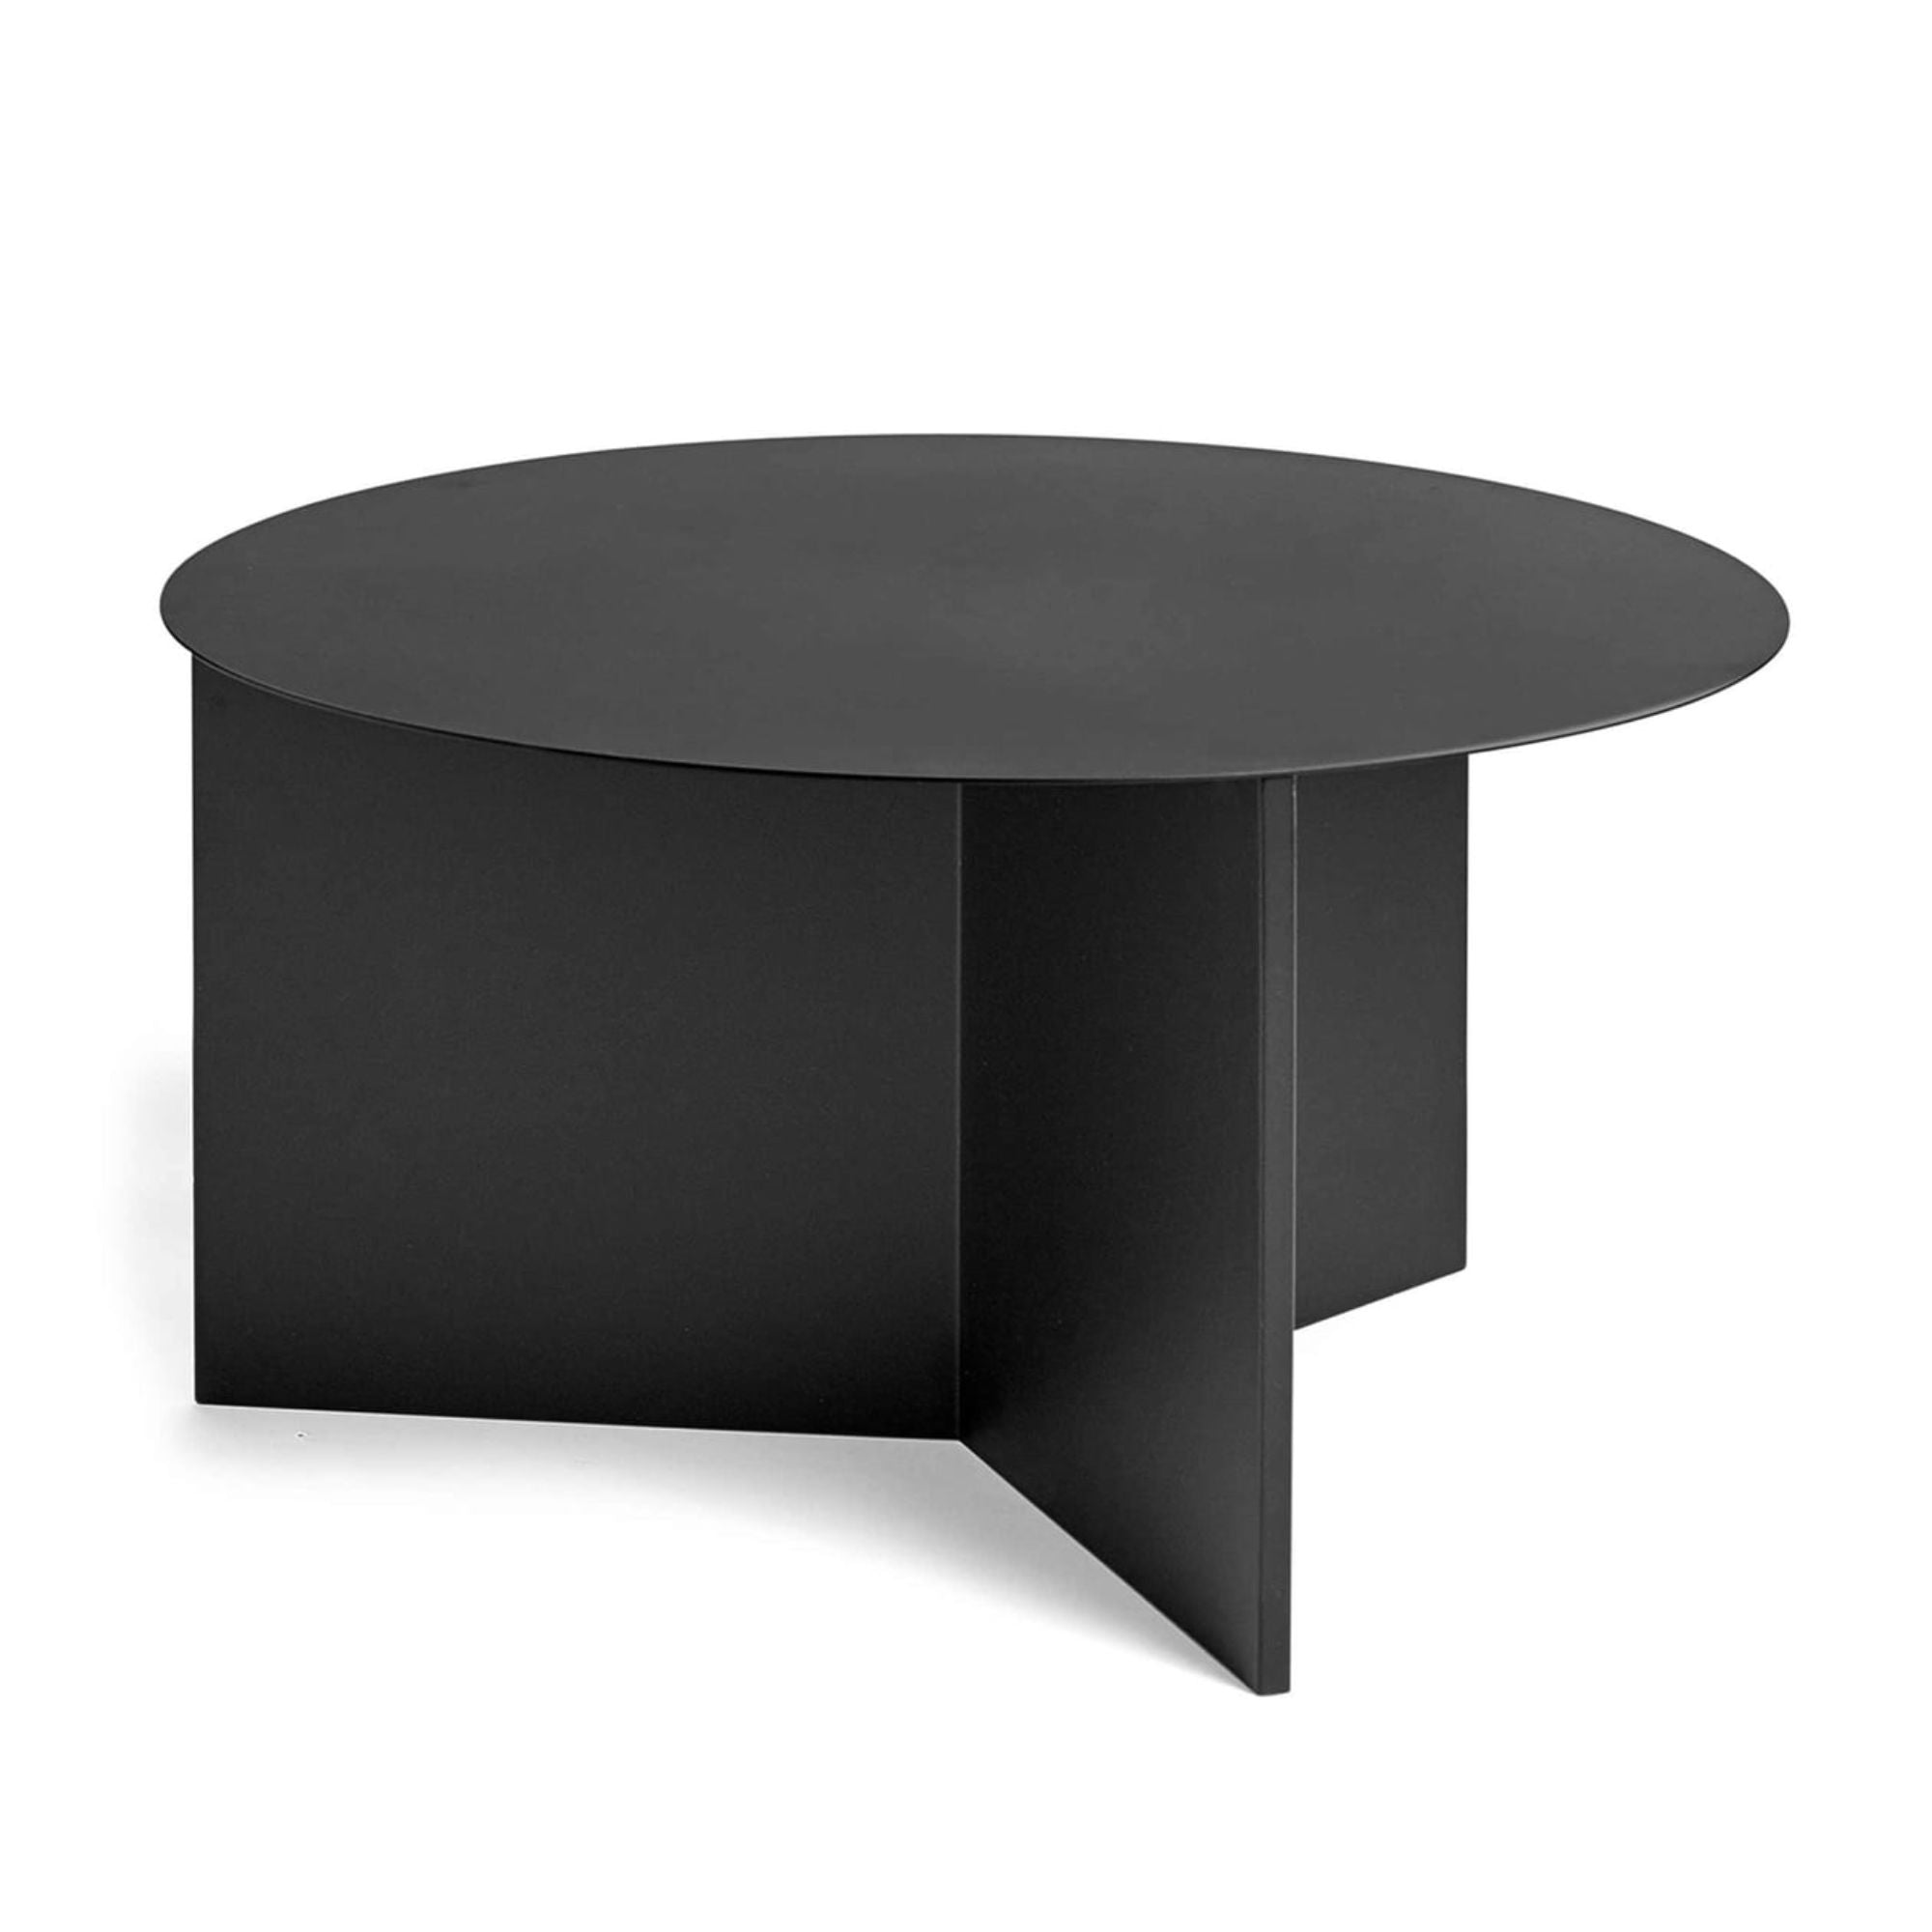 Hay Slit Coffee Table Round XL Φ65 , Black